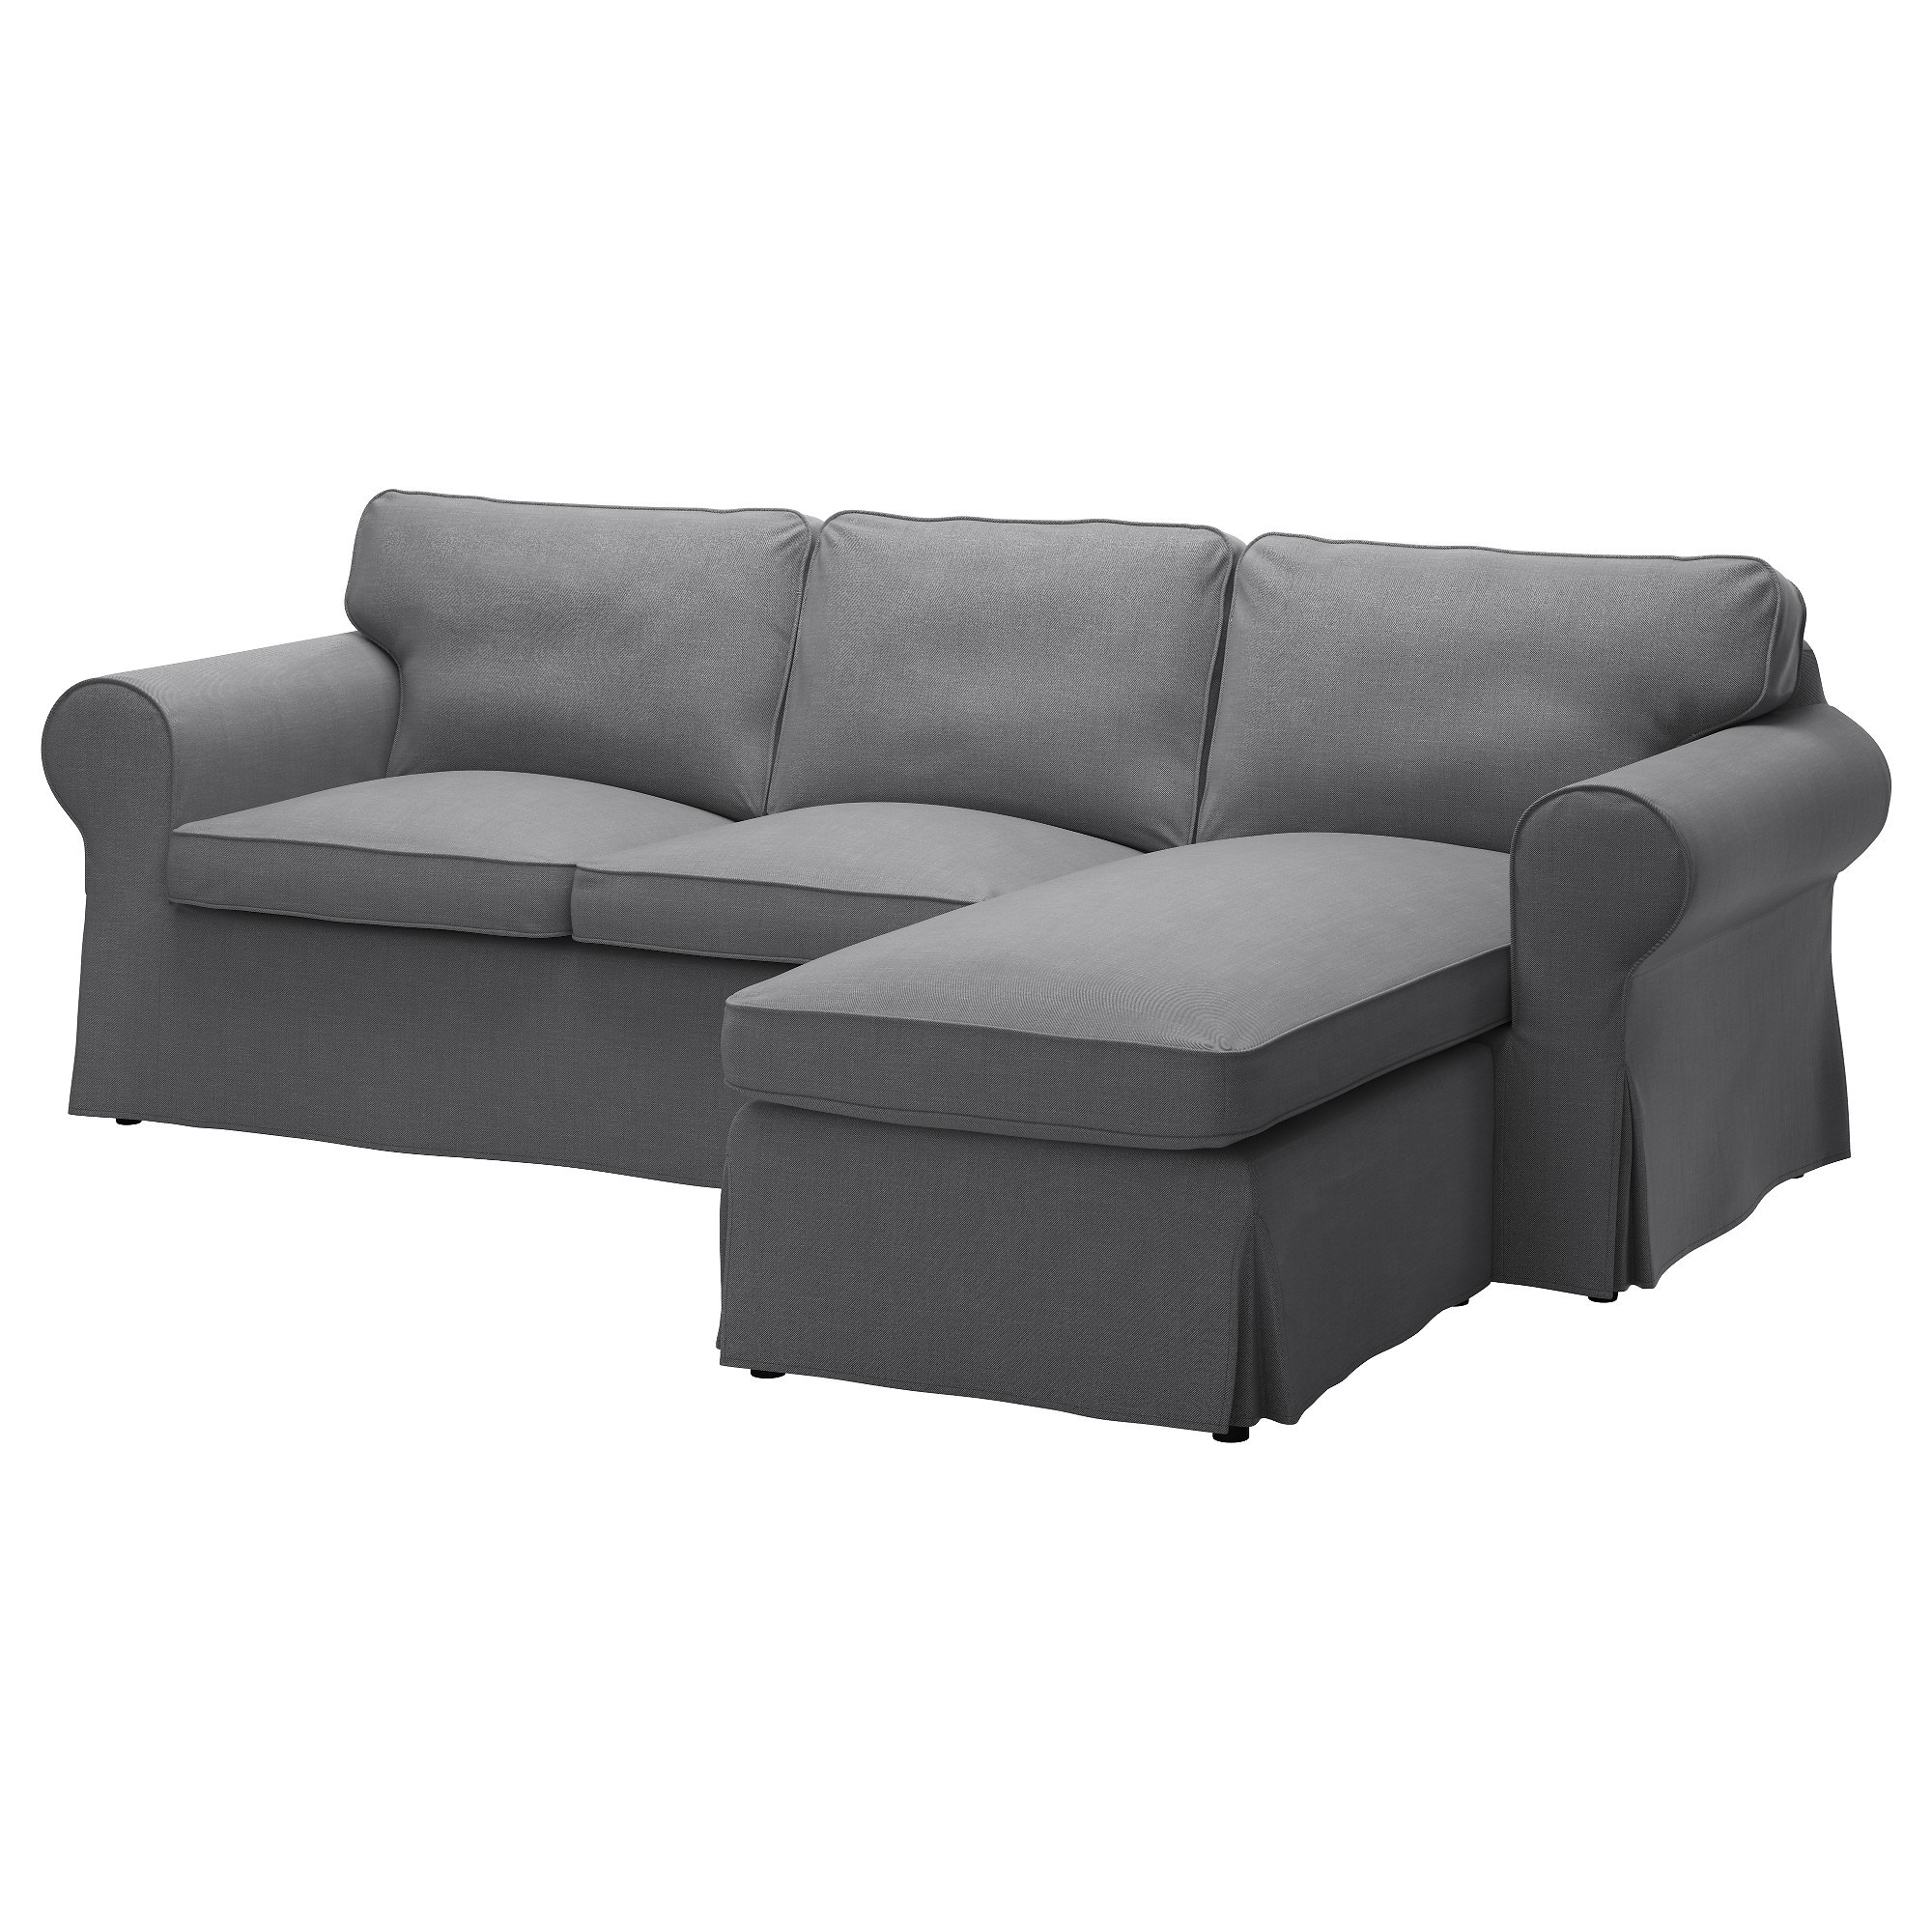 Best ideas about Ikea Sectional Sofa . Save or Pin EKTORP Two seat sofa and chaise longue Nordvalla dark grey Now.